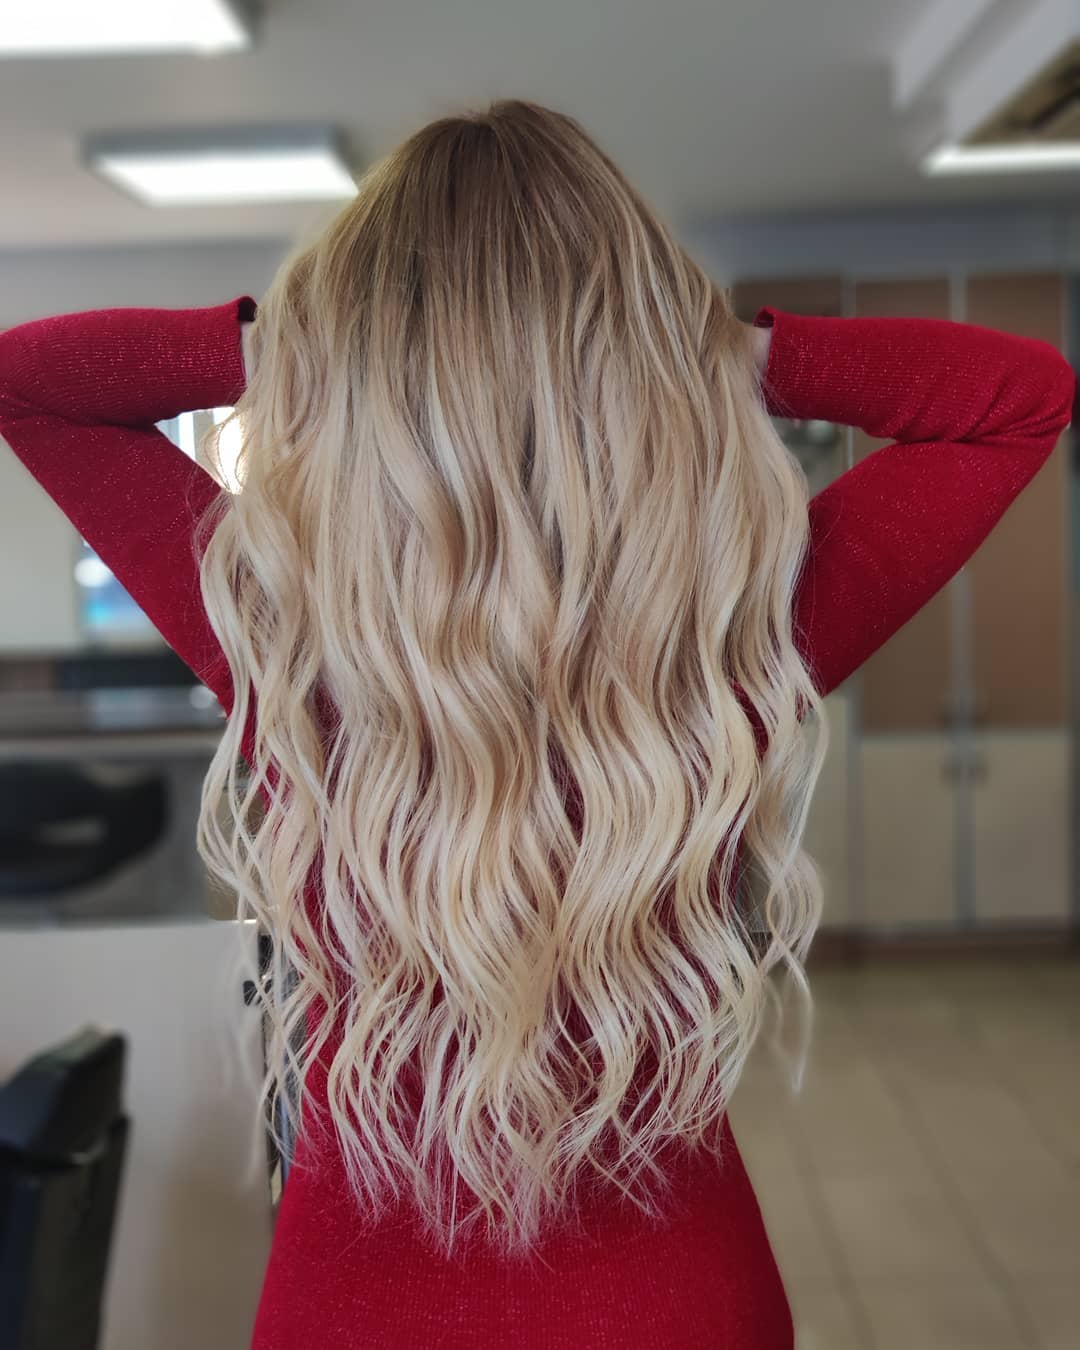 1.Dirty Blonde Curly 8